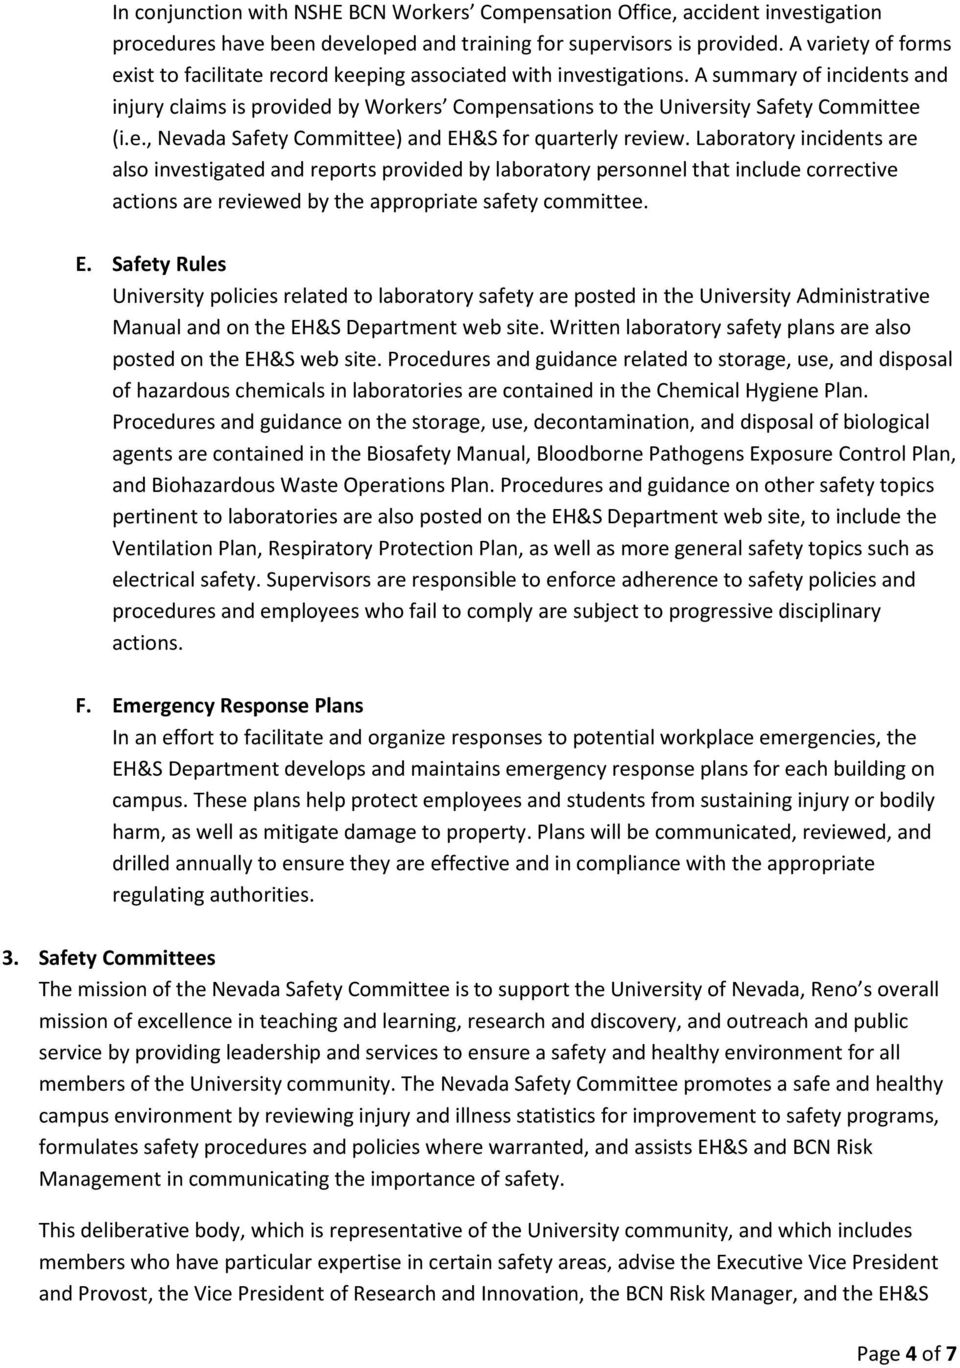 A summary of incidents and injury claims is provided by Workers Compensations to the University Safety Committee (i.e., Nevada Safety Committee) and EH&S for quarterly review.